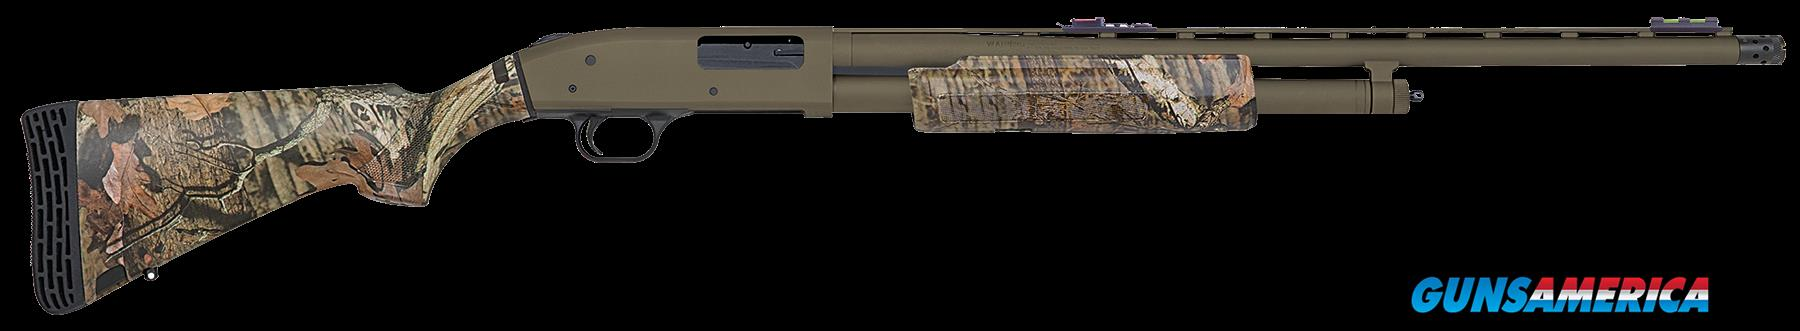 "Mossberg 54319 FLEX 20ga Pump Shotgun 24"" 3"" ODG MO Break-Up Infinity  Guns > Shotguns > MN Misc Shotguns"